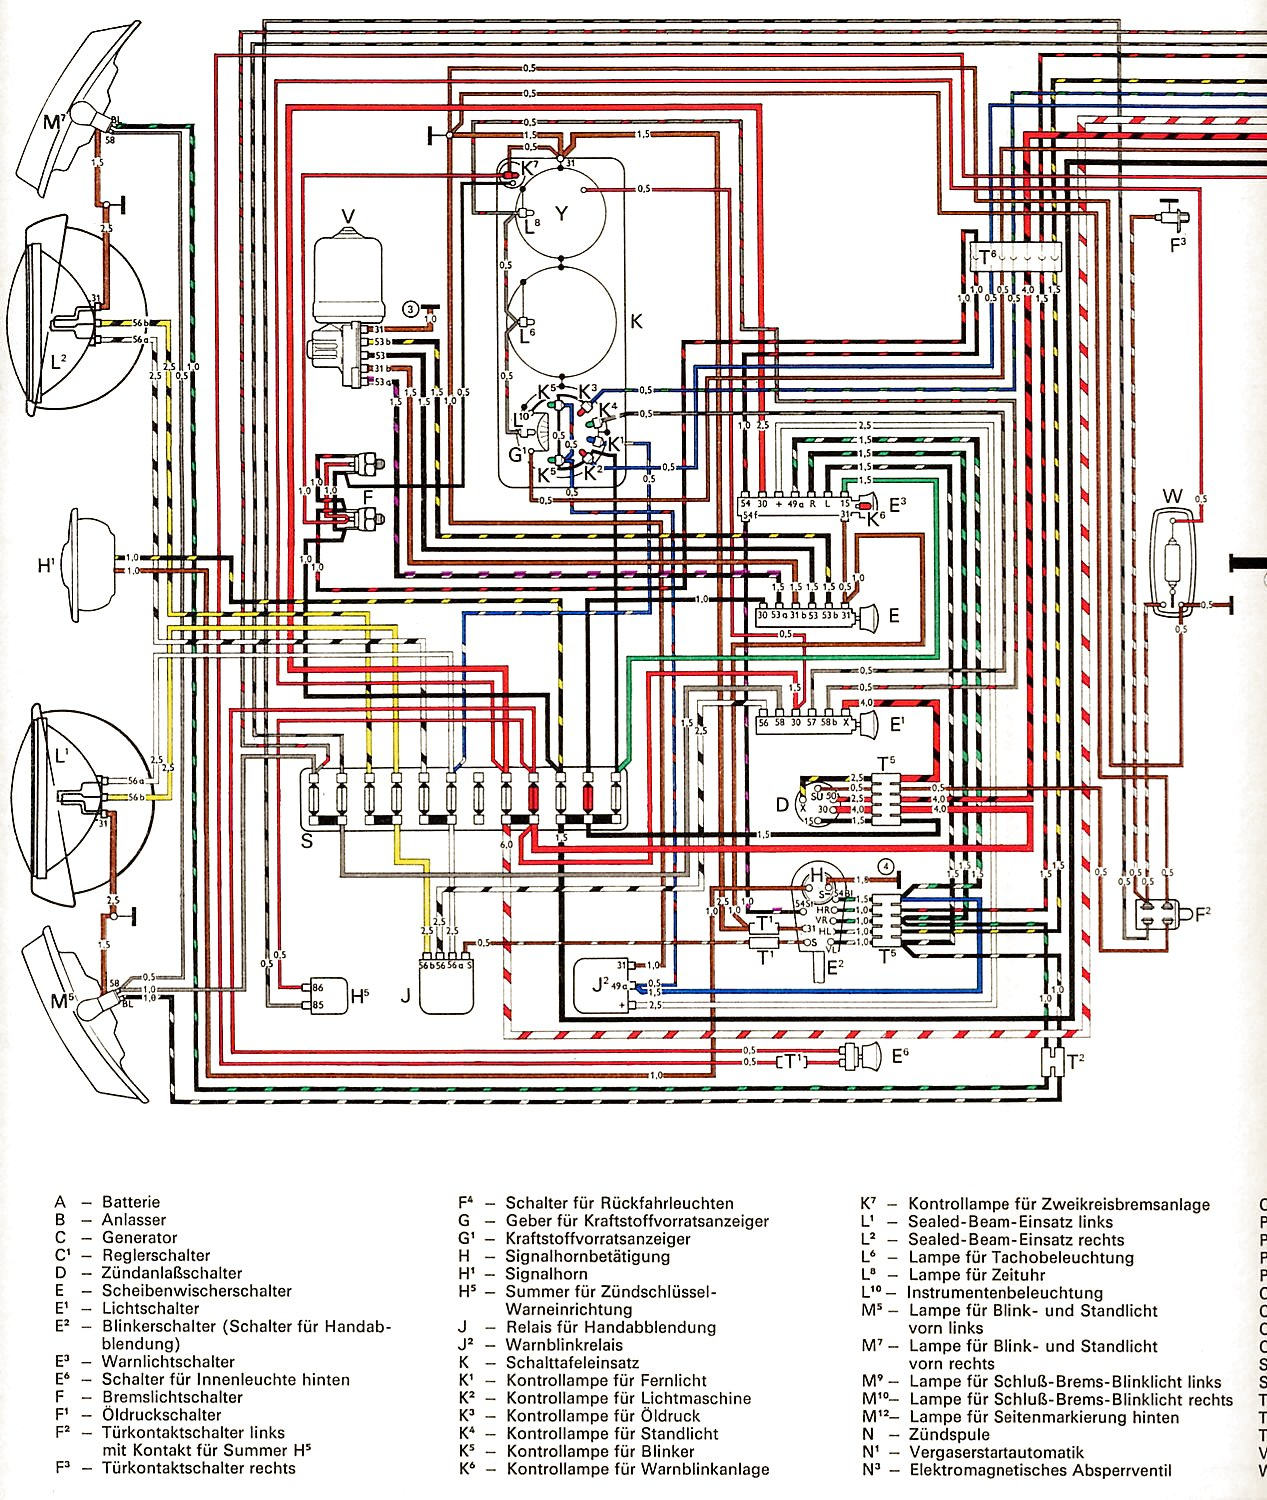 Vintagebus - Vw Bus (And Other) Wiring Diagrams - Vw Wiring Diagram